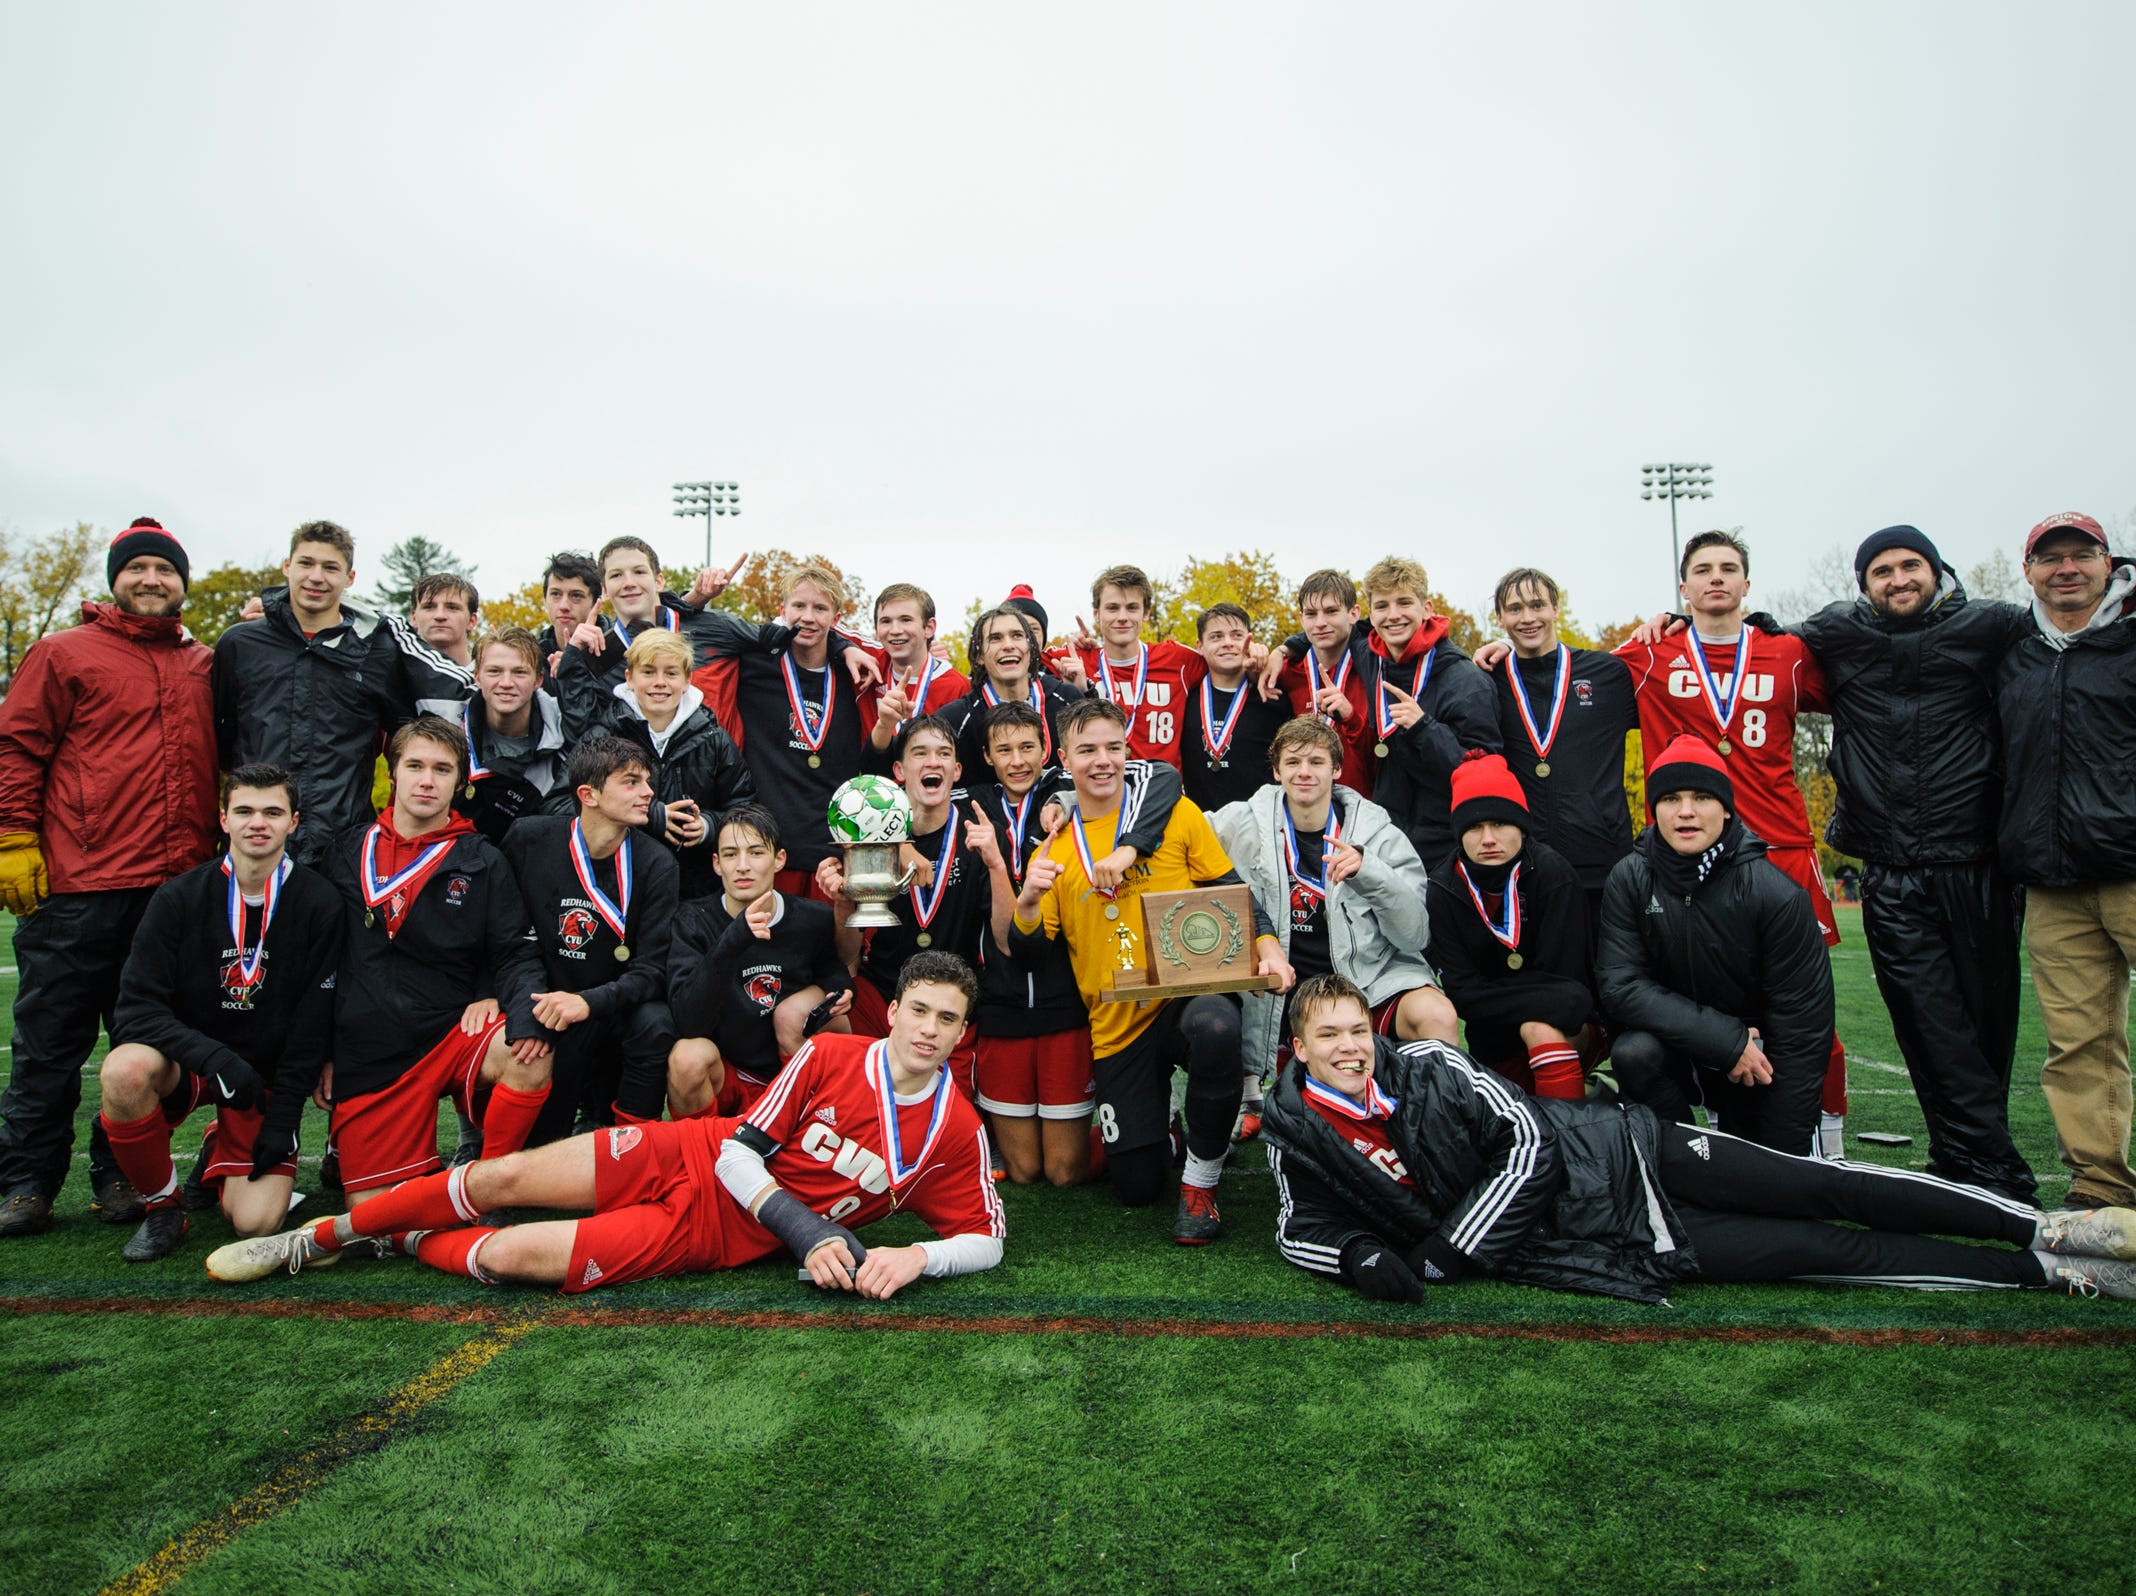 CVU poses for a group picture at the conclusion of the Division I boys soccer championship game between the St. Johnsbury Hilltoppers and the Champlain Valley Union Redhawks at Buck Hard Field on Saturday morning November 3, 2018 in Burlington.